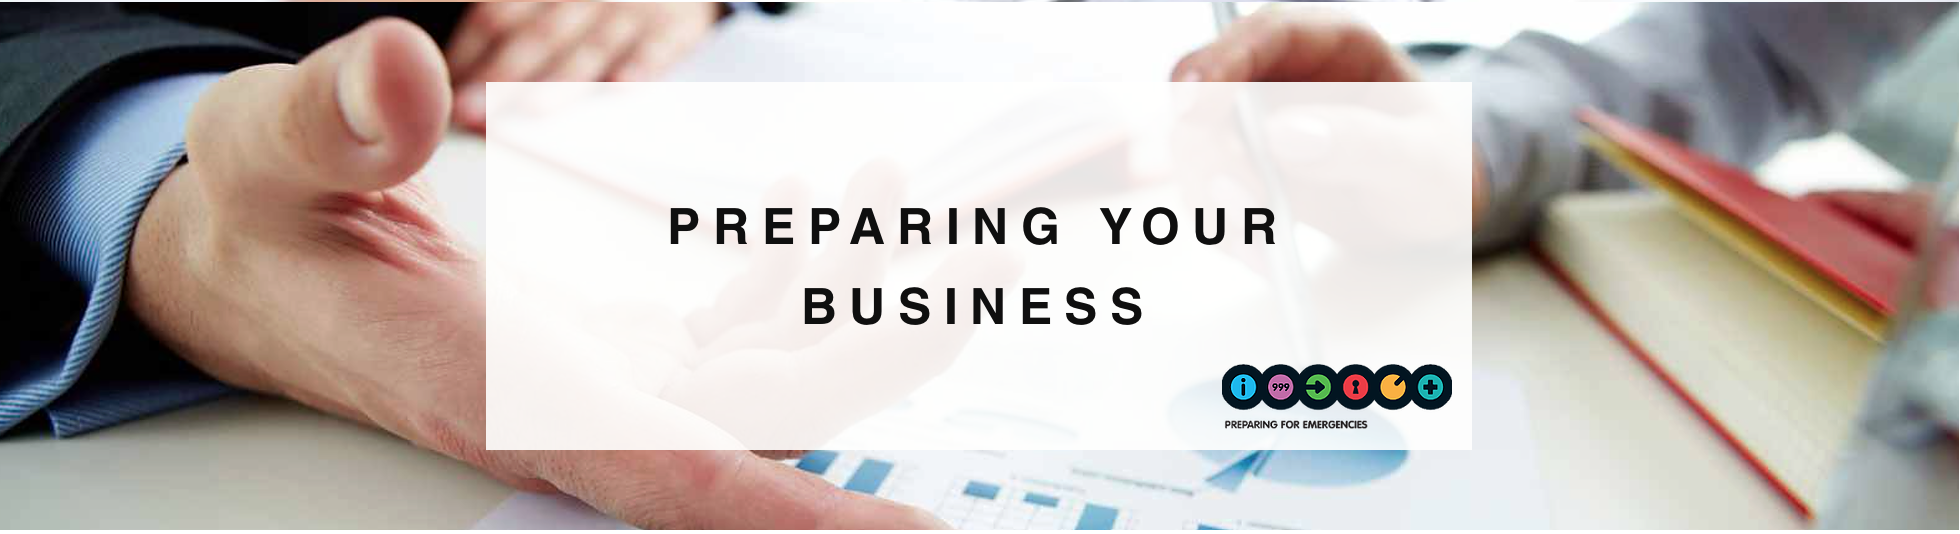 prepare your business